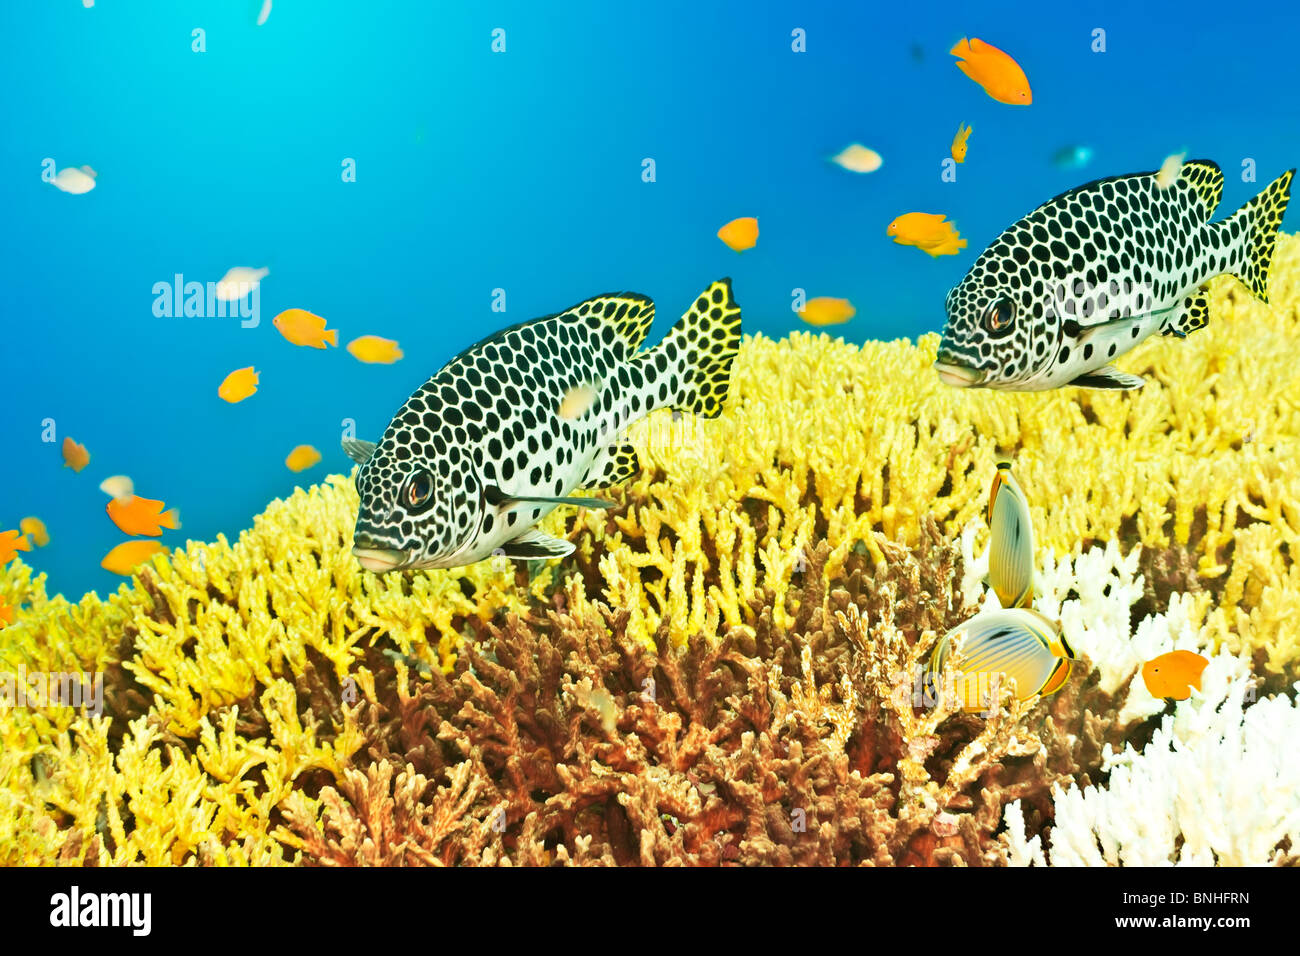 Underwater landscape with couple of Sweetlips - Stock Image